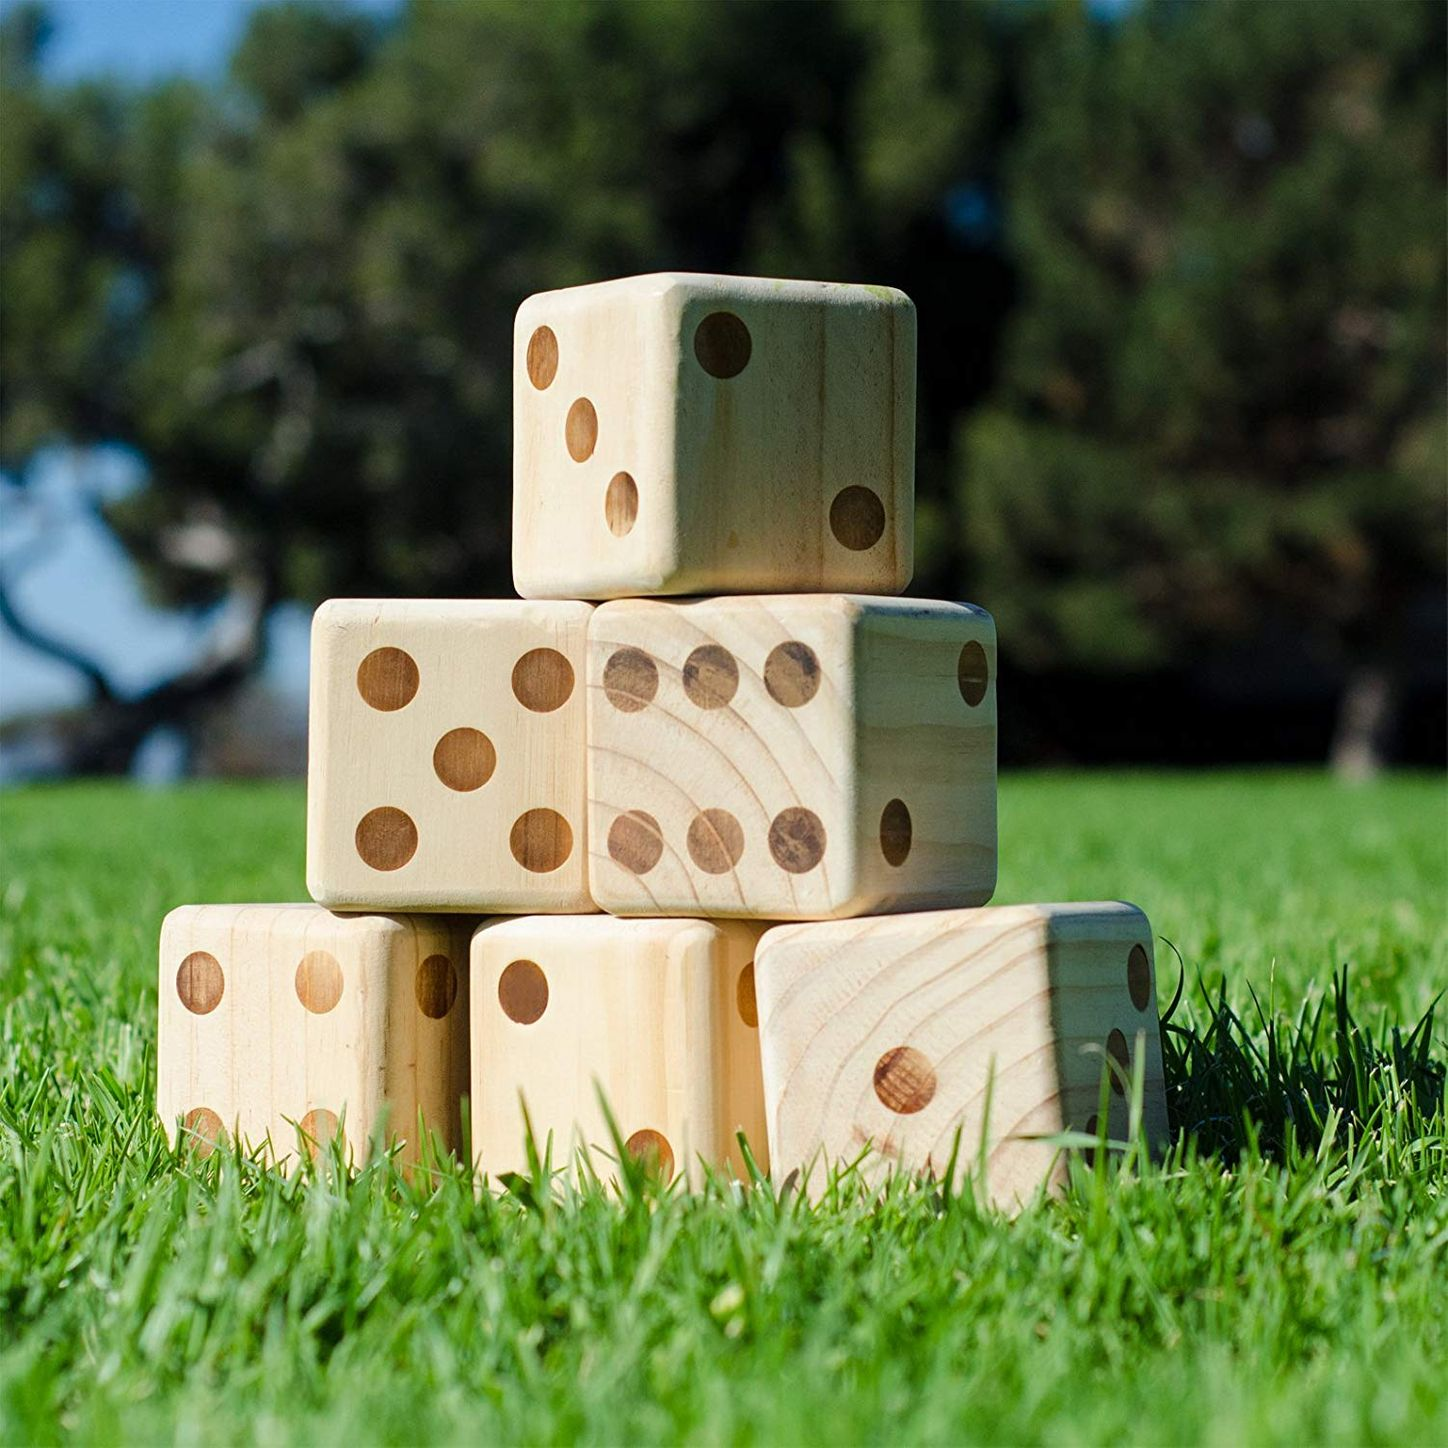 GoSports Giant Wooden Playing Dice Set